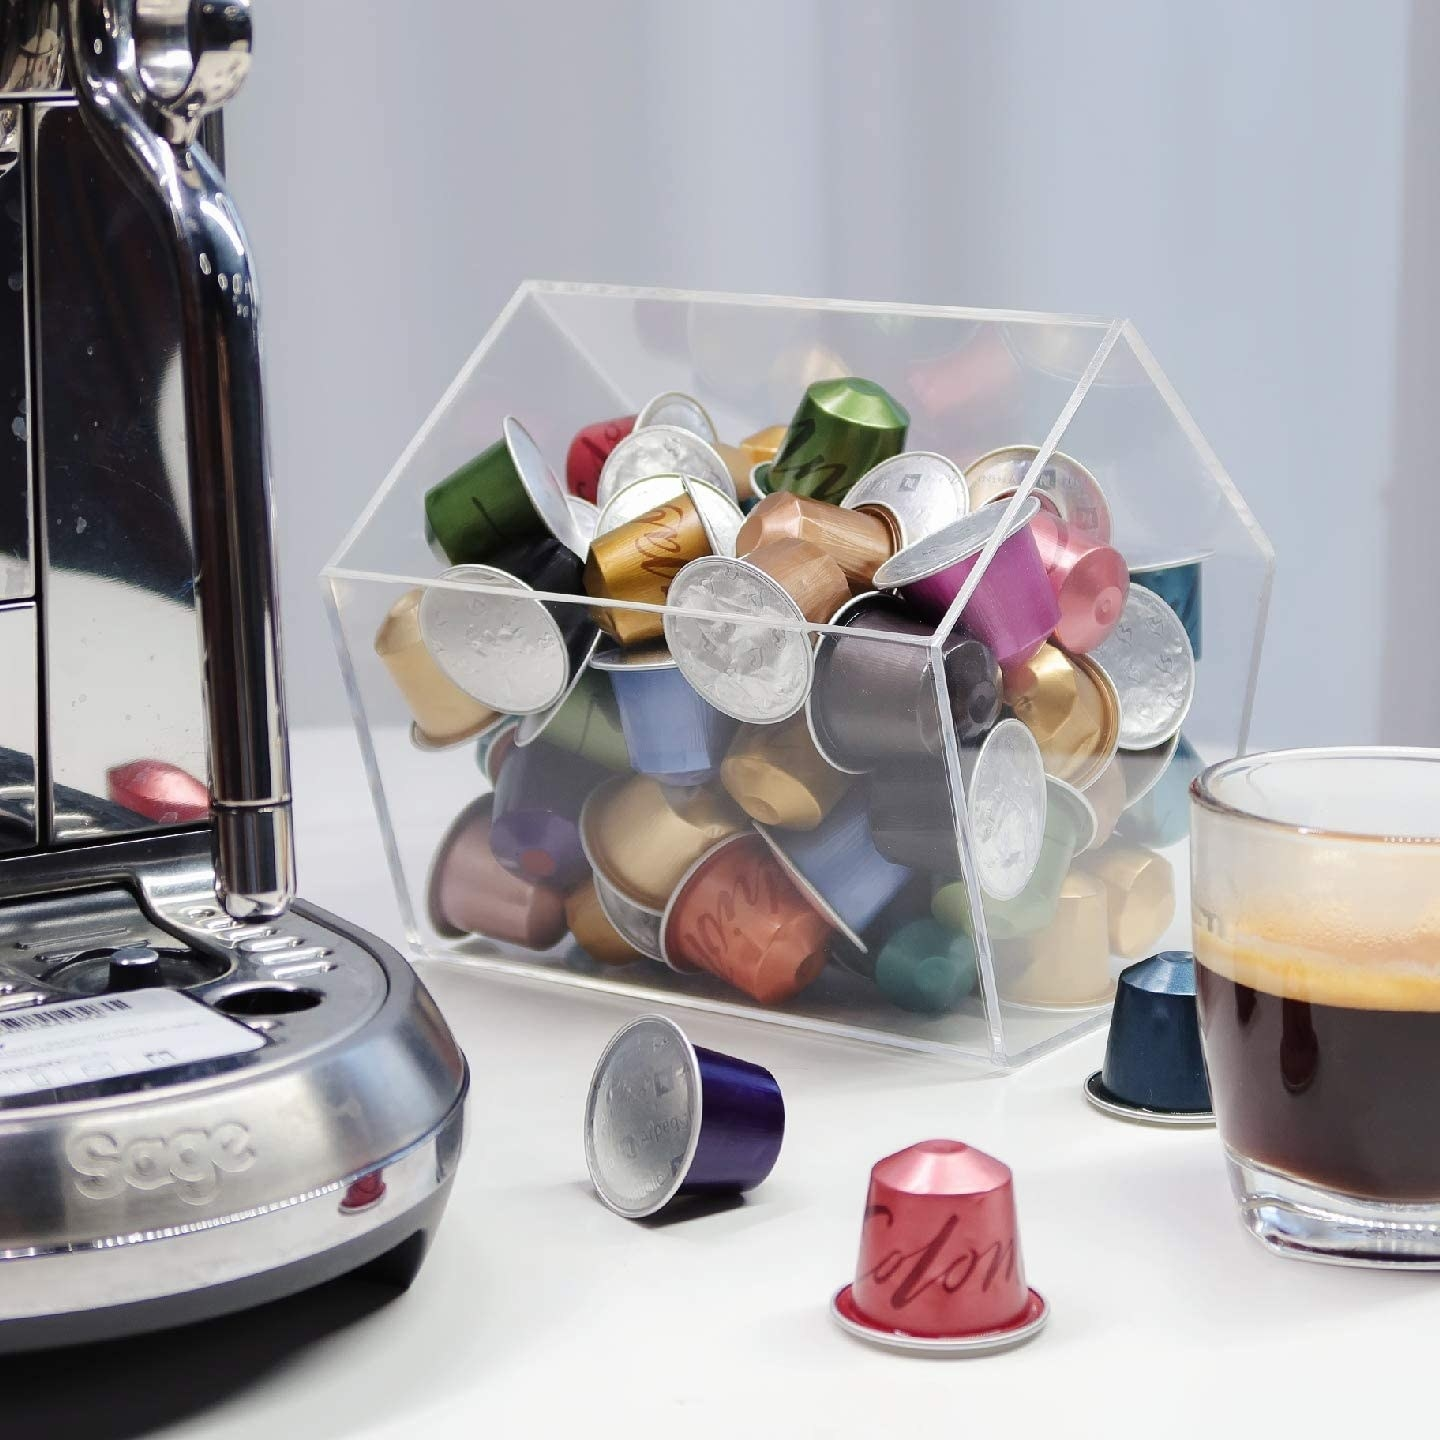 The plexiglass house filled with pods between a coffee machine and a cup of coffee